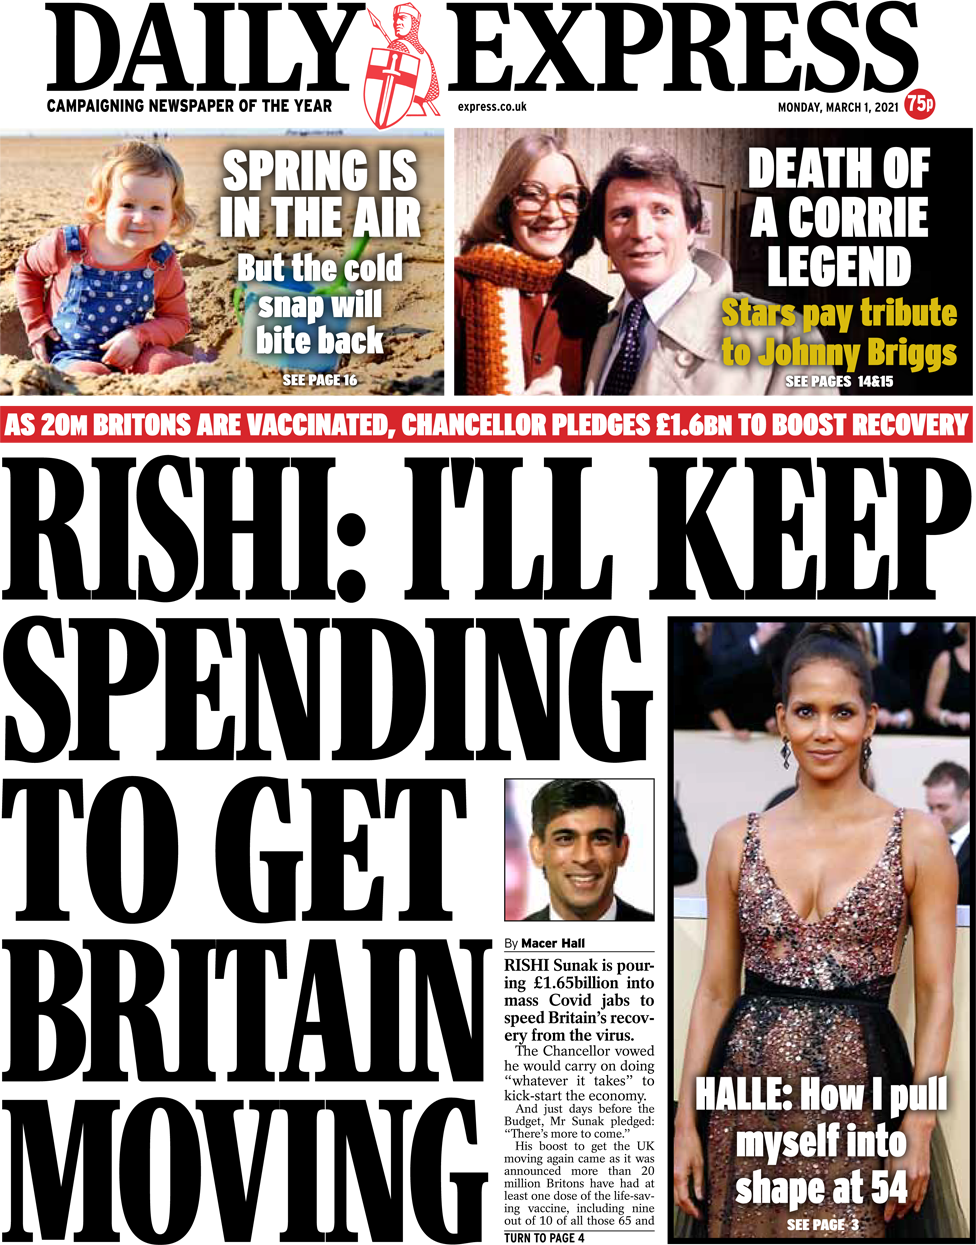 The Daily Express front page 1 March 2021